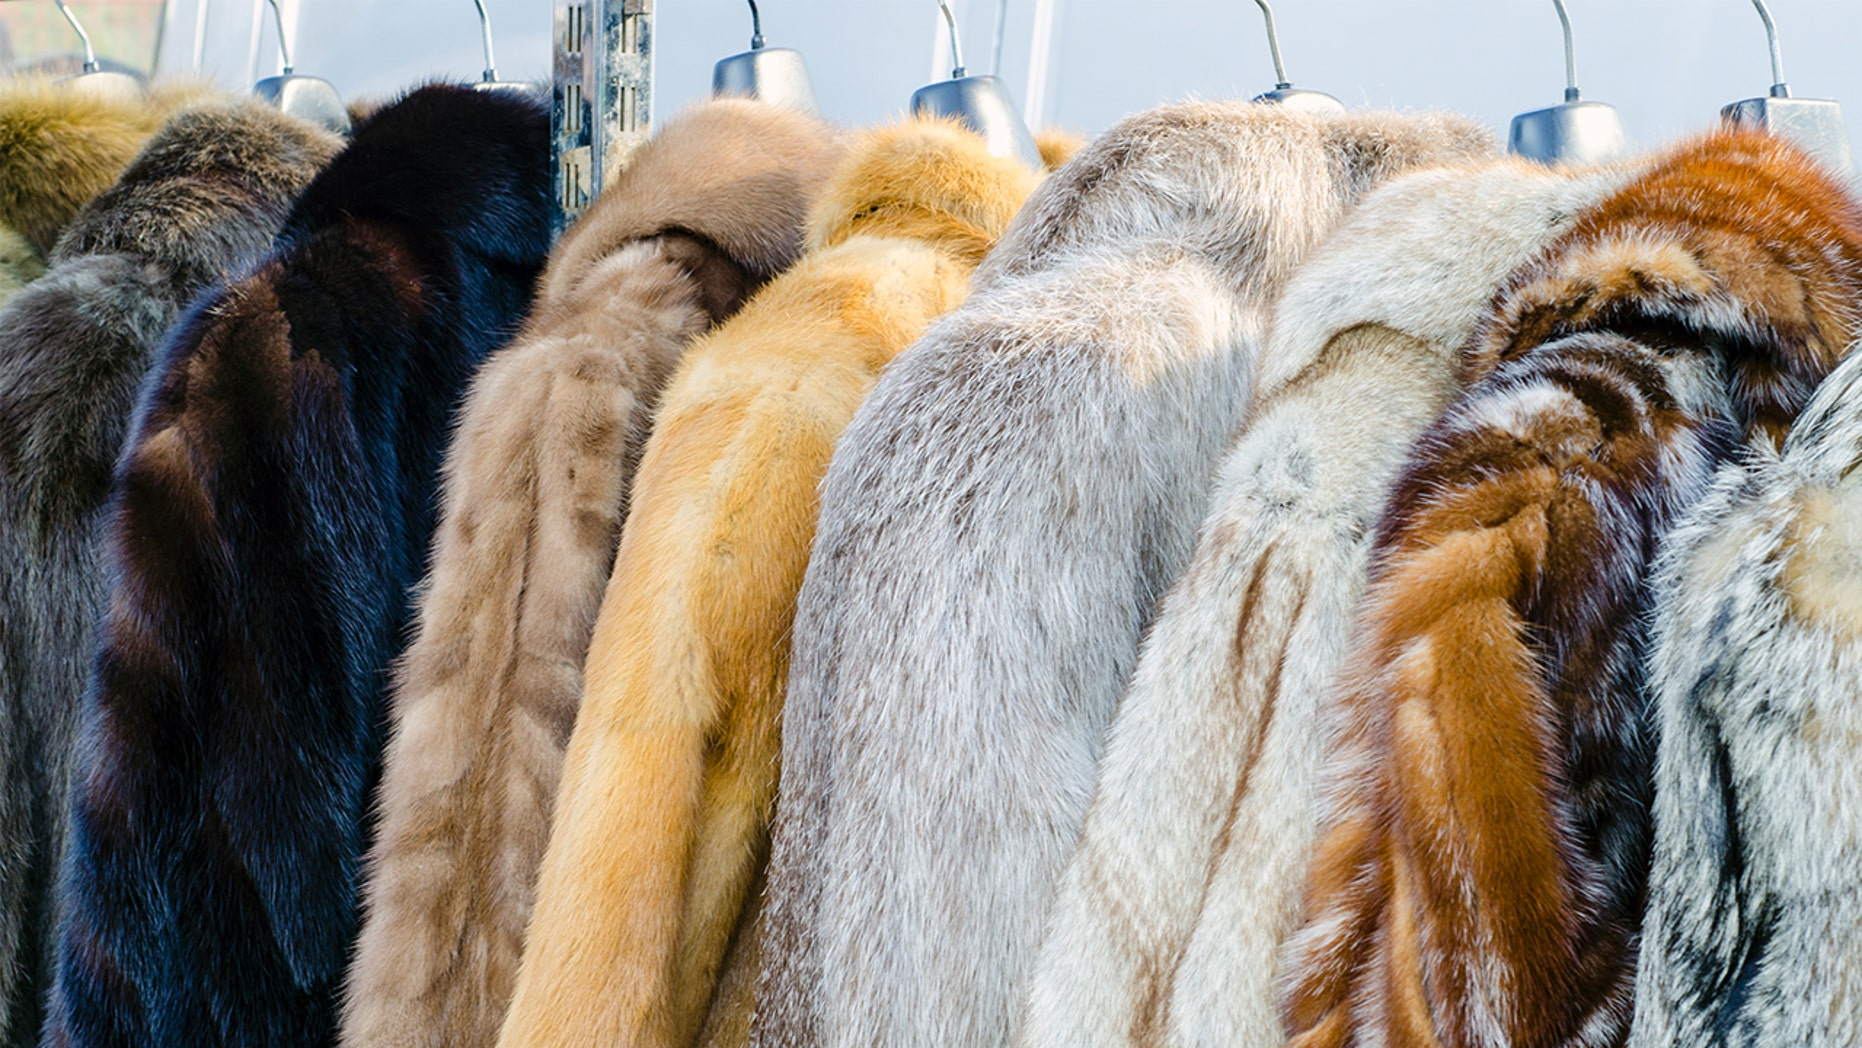 Two different retailers have been slammed by the Humane Society for passing real fur as faux on various items.